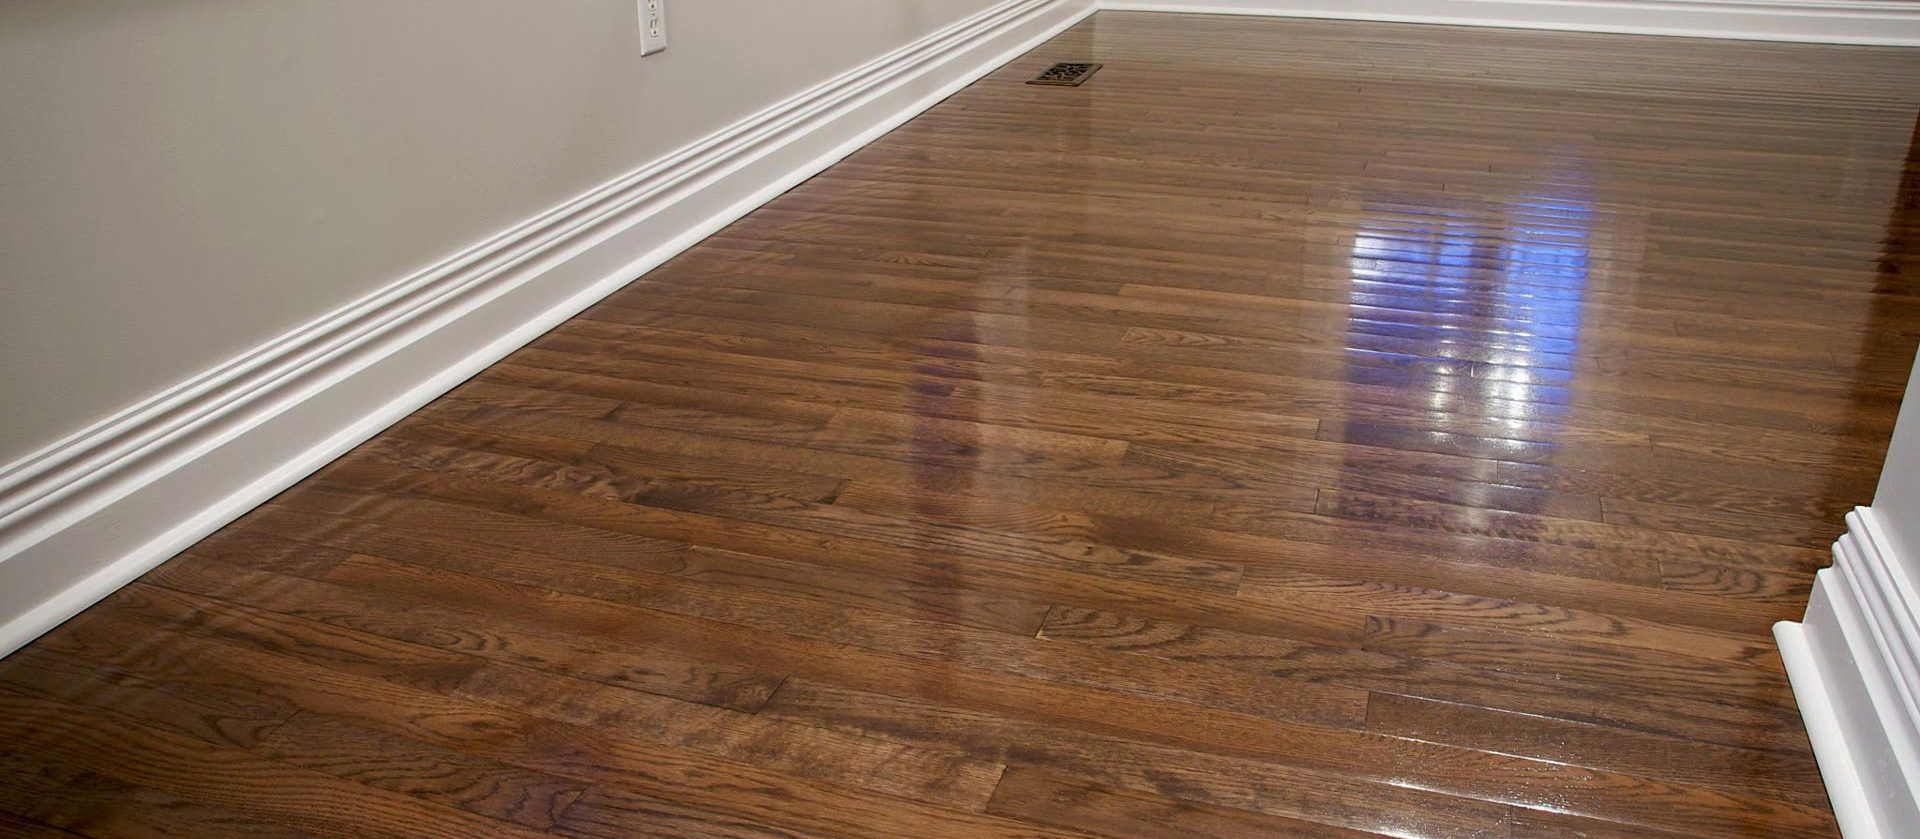 Flooring-eco-home-improvement (6).jpg